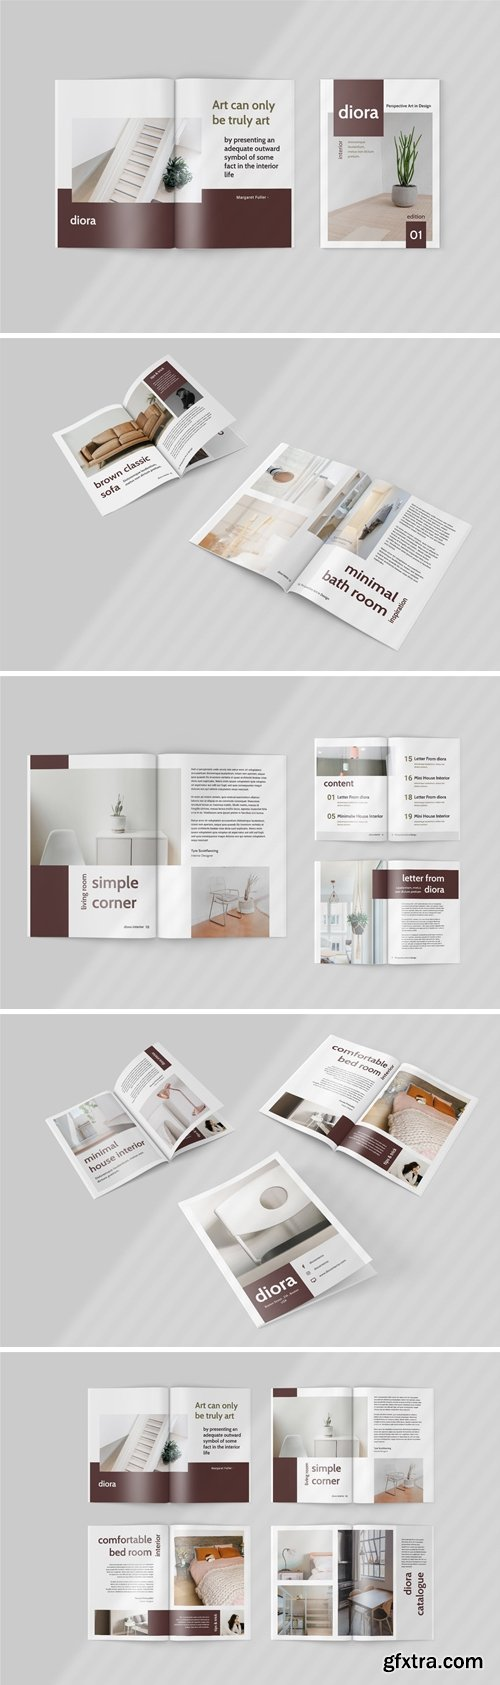 Diora - Furniture Magazine Template